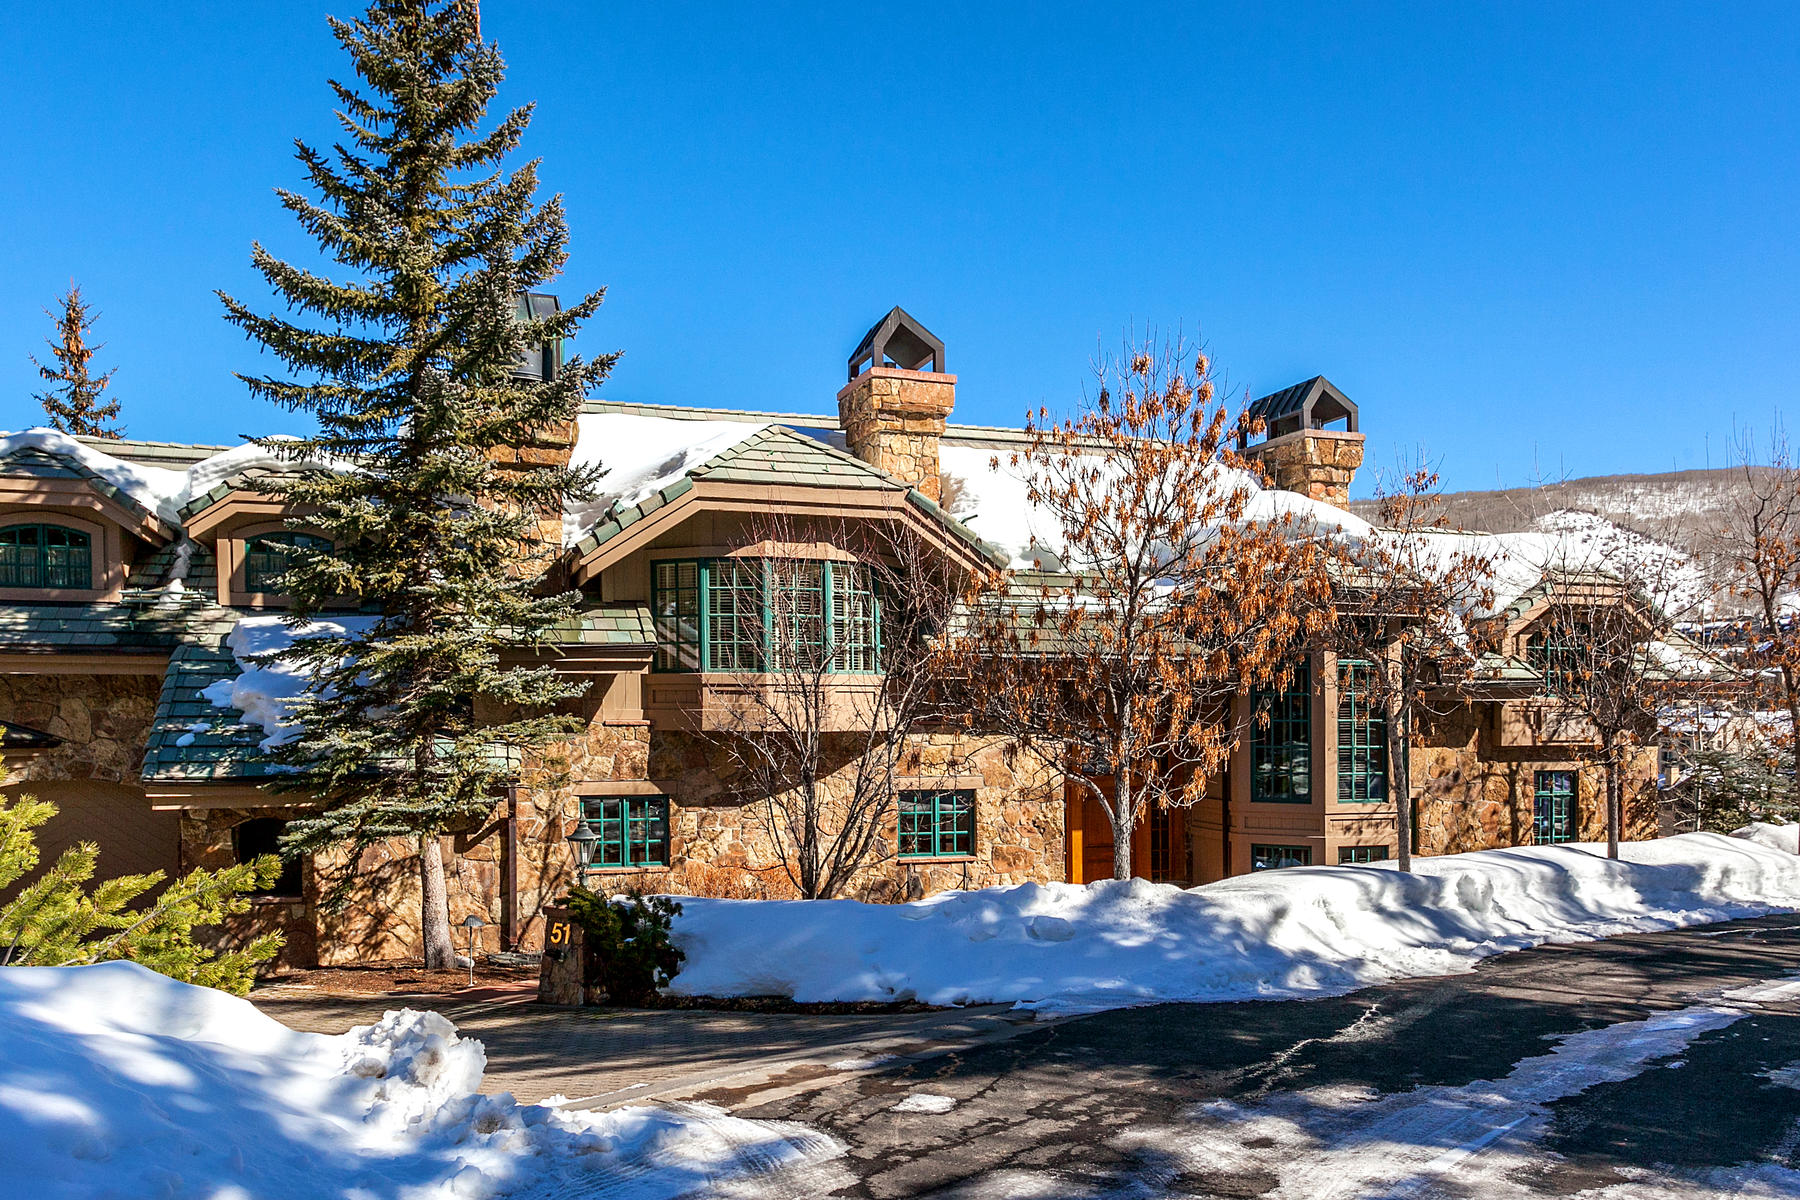 Additional photo for property listing at Chateau #11 Ski-in Ski-out Estate 51 Chateau Lane #11 Beaver Creek, Colorado 81620 United States